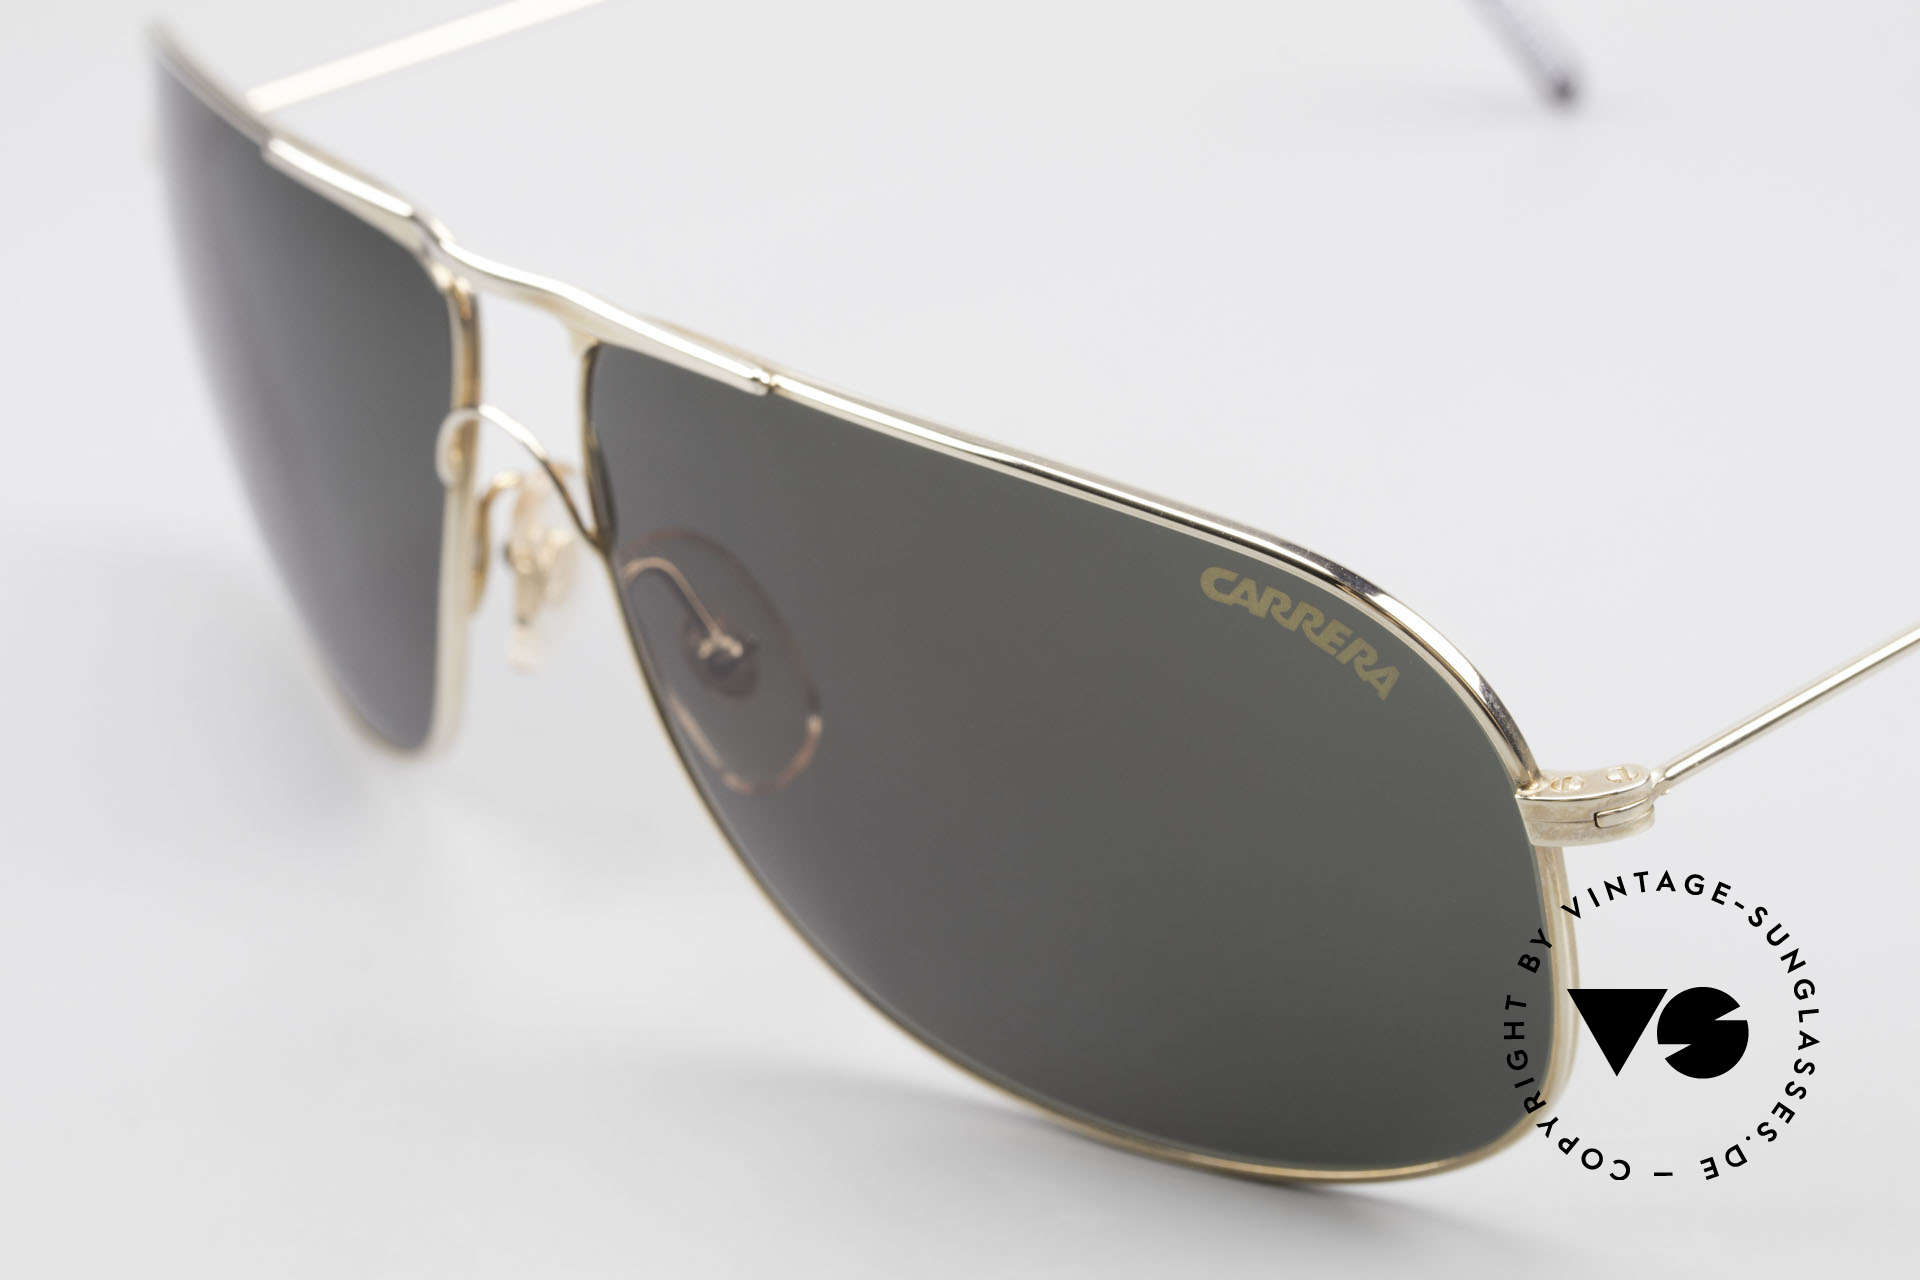 Carrera 5422 Shades With 3 Sets of Lenses, 1x brown-gradient, 1x gray-gradient and 1x green-solid, Made for Men